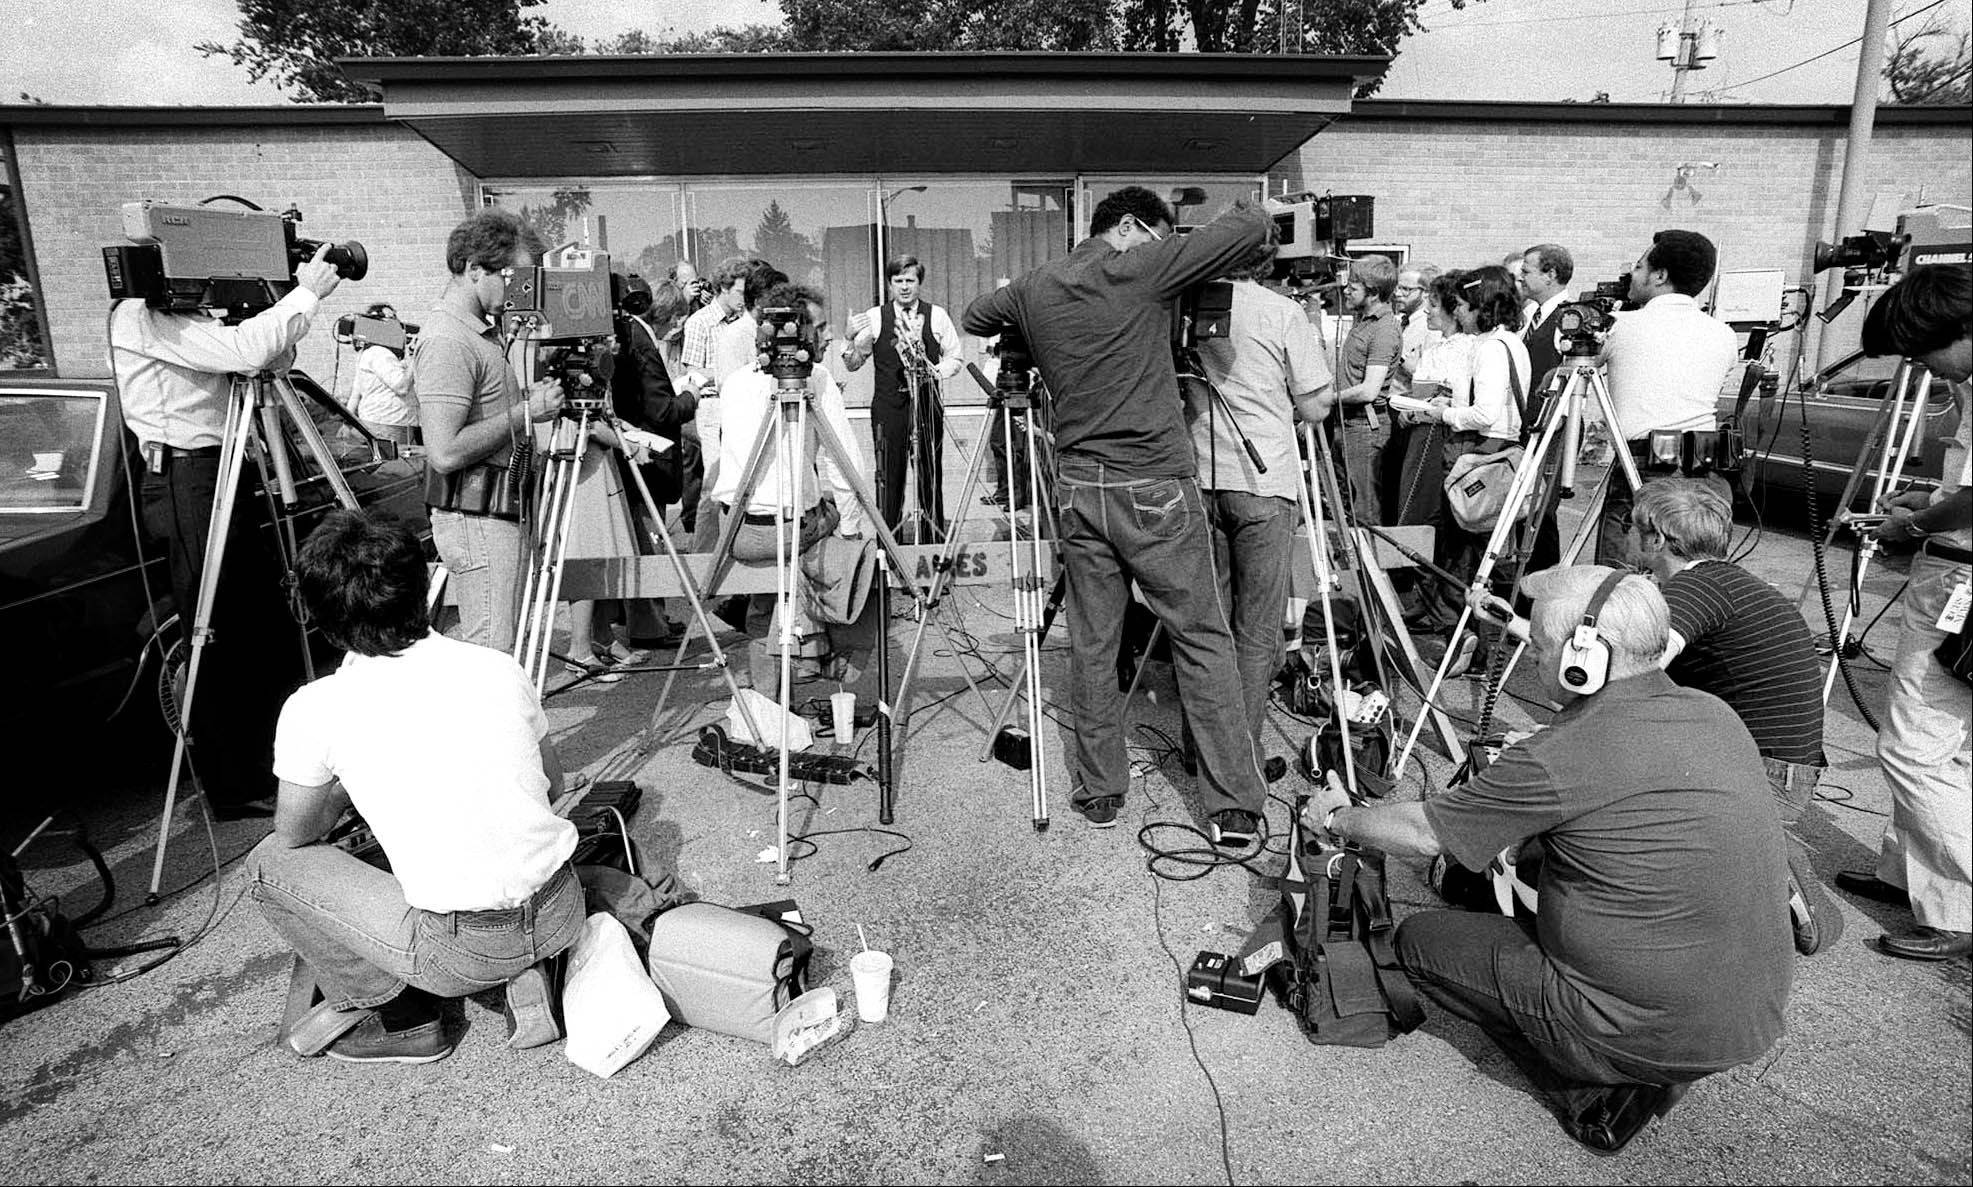 News crews surround the entrance to the Illinois State Police office in Des Plaines, the headquarters for the Tylenol killings investigation, on Oct. 8, 1982.